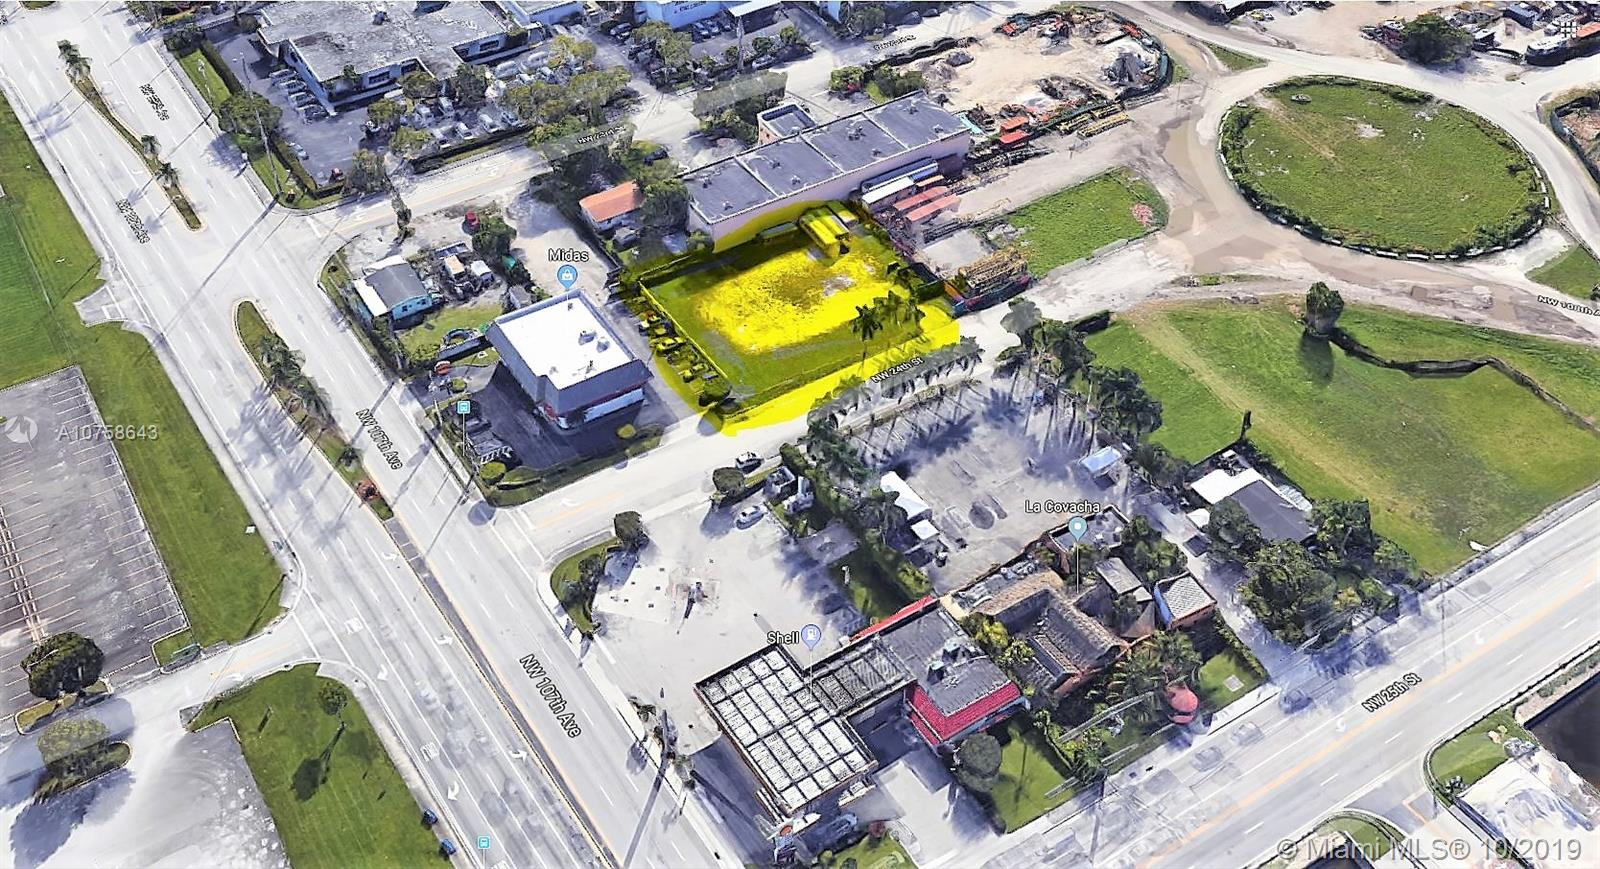 107 NW 24 ST, Sweetwater, FL 33172